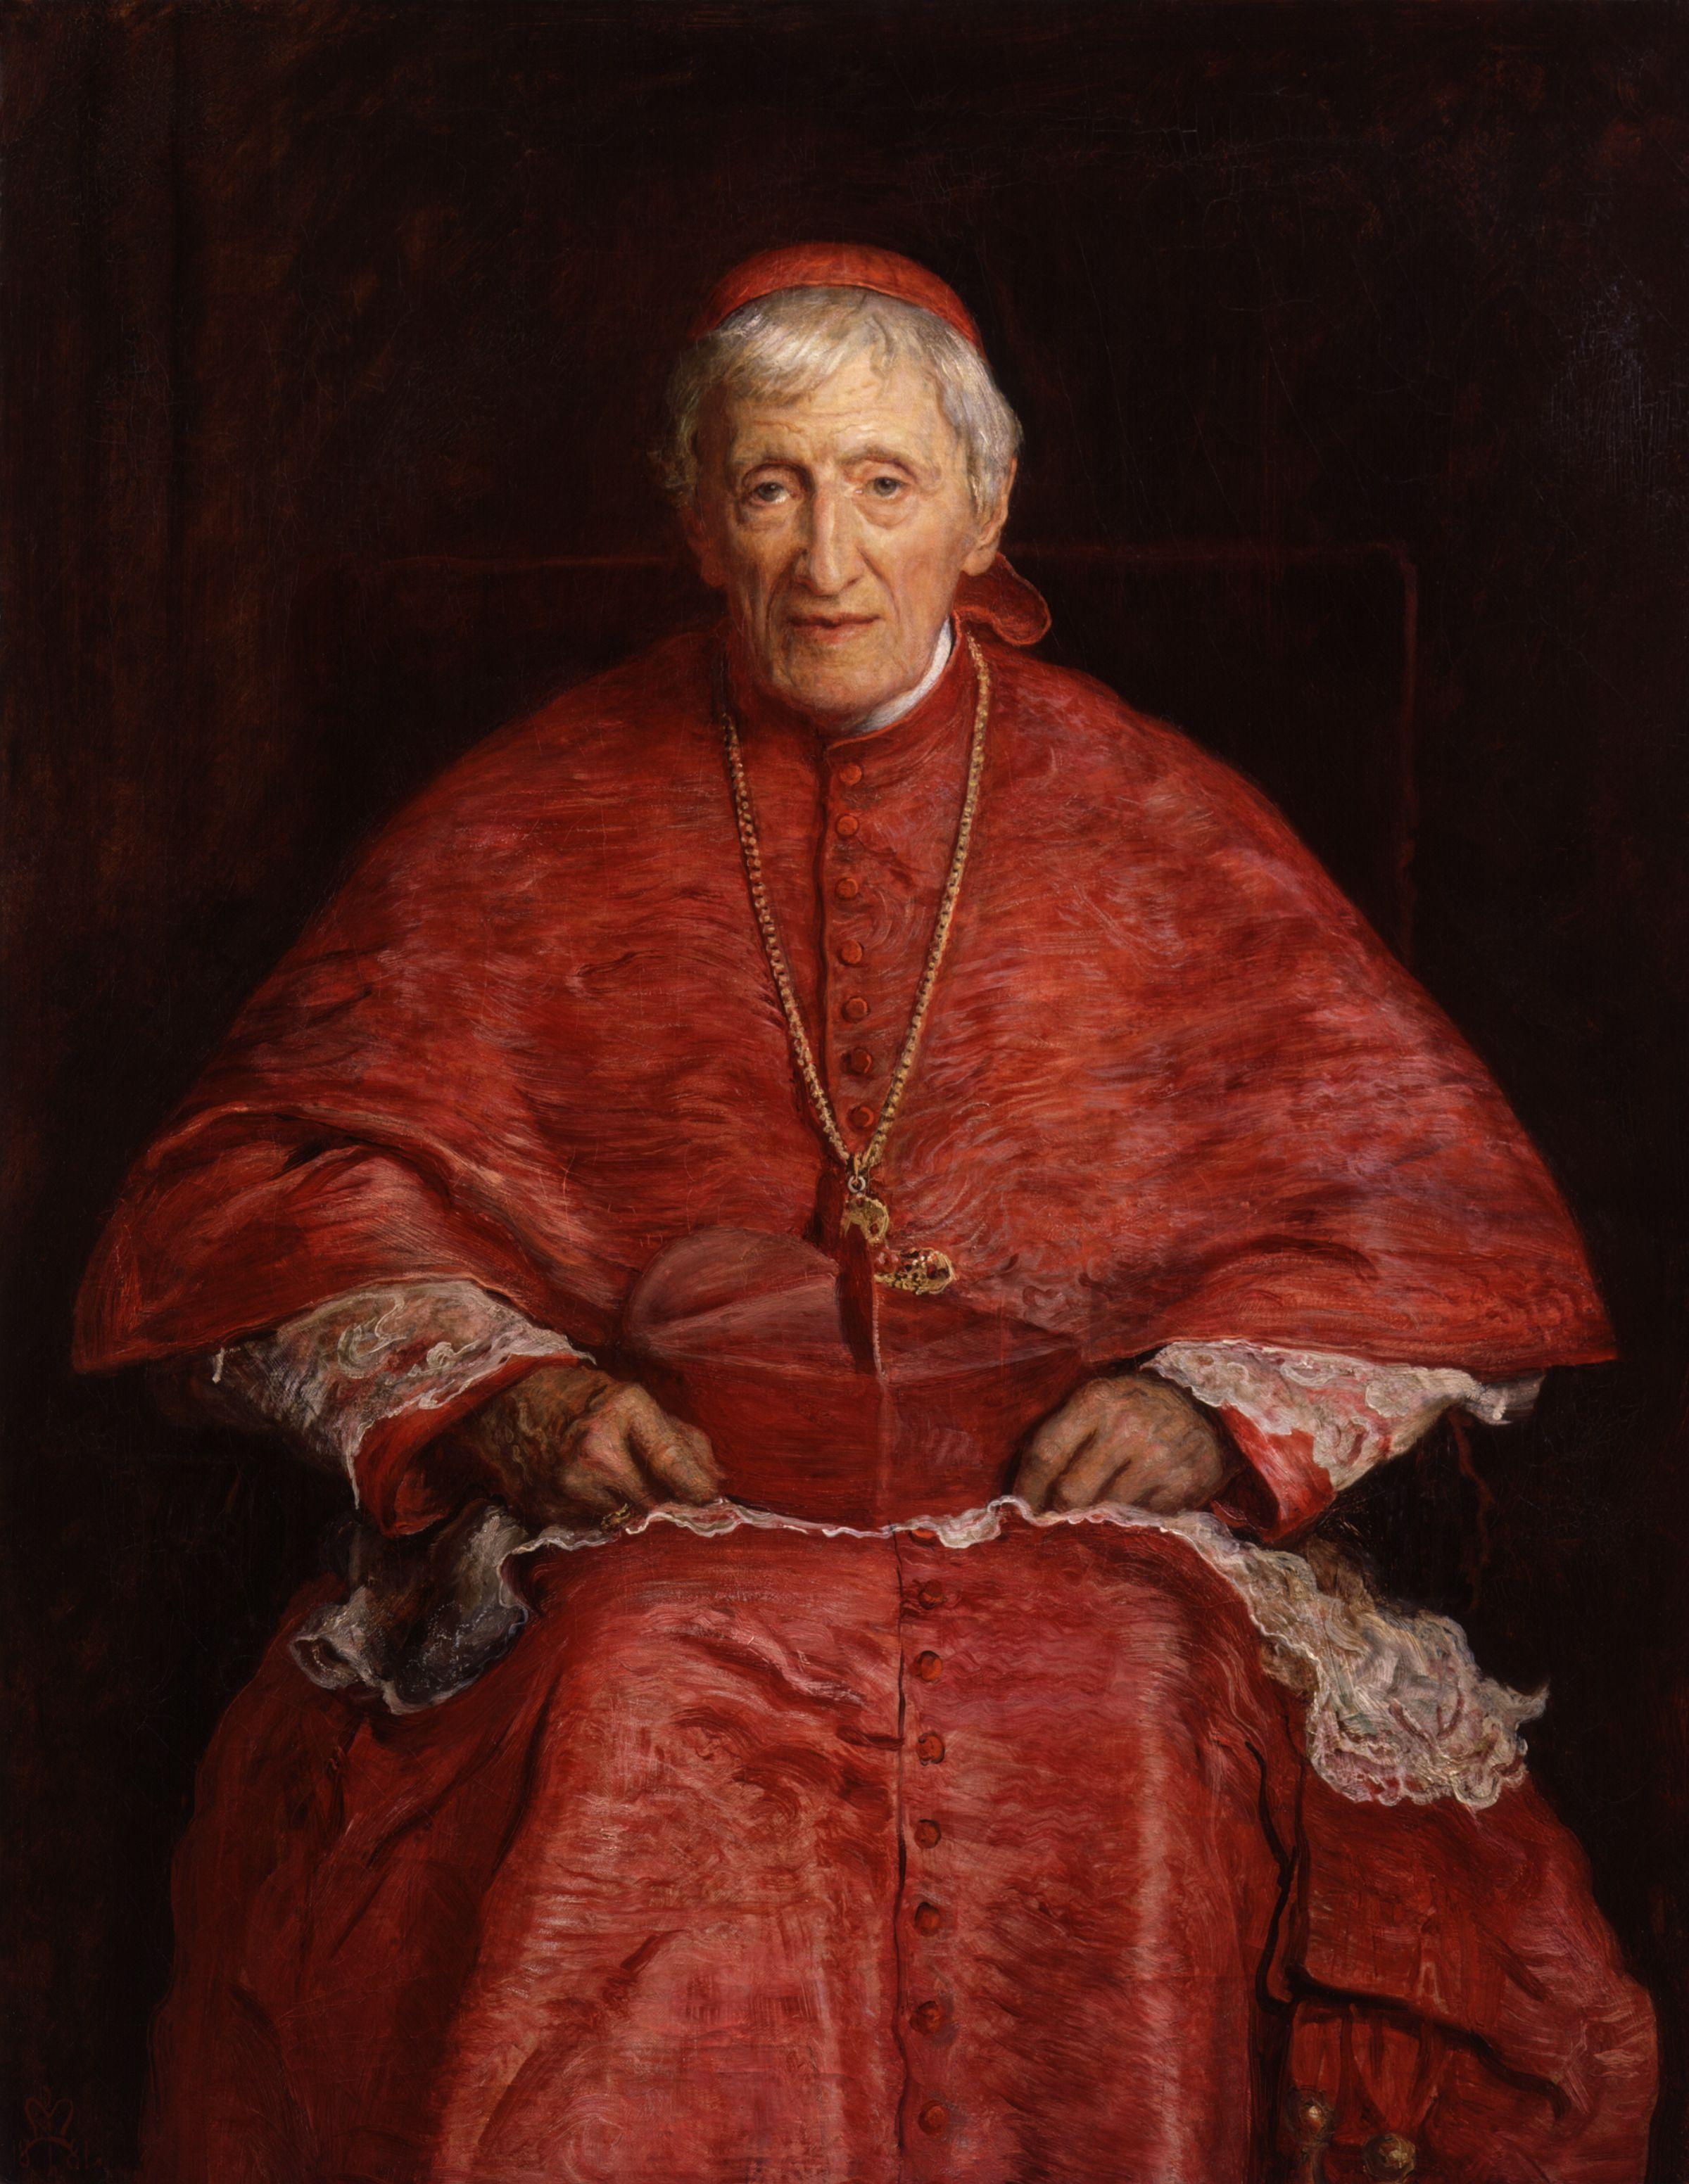 http://upload.wikimedia.org/wikipedia/commons/a/ab/John_Henry_Newman_by_Sir_John_Everett_Millais,_1st_Bt.jpg